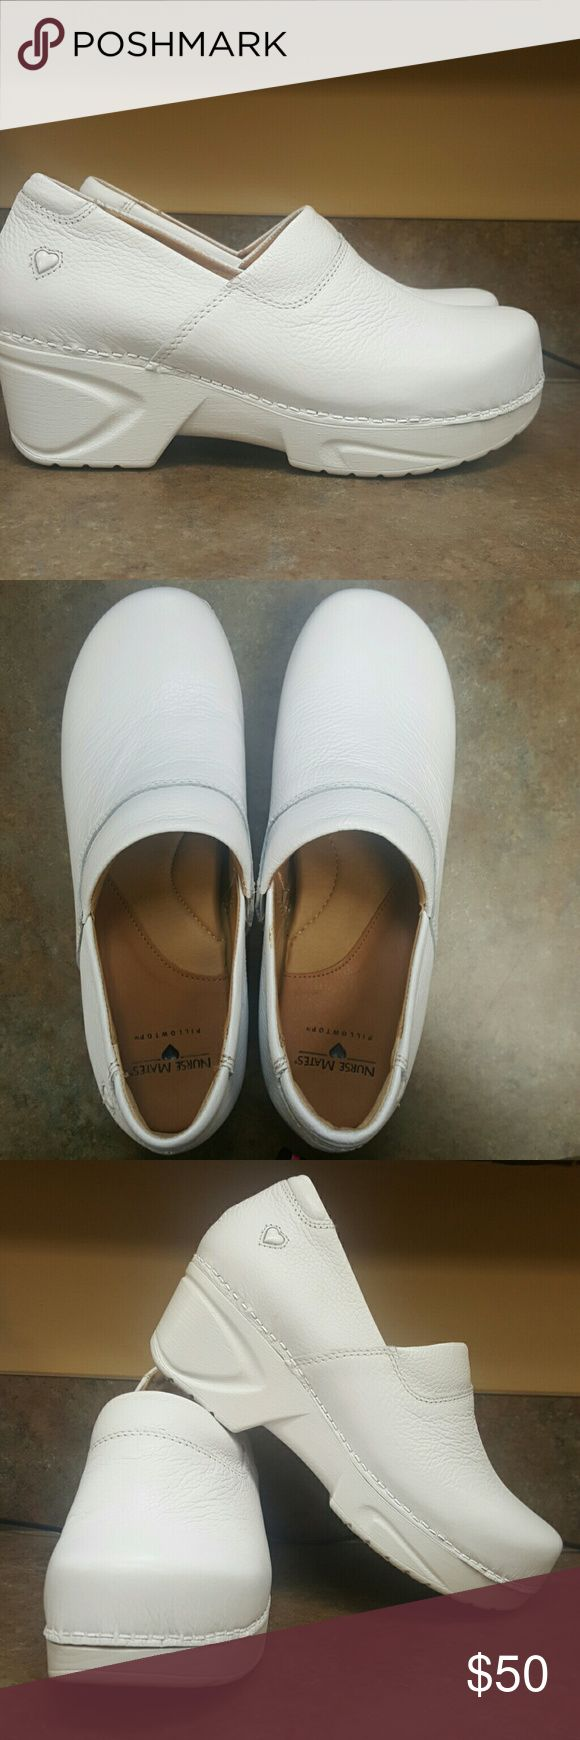 Nurse mates These are brand new and super cute! Love them! Nurse Mates Shoes Mules & Clogs